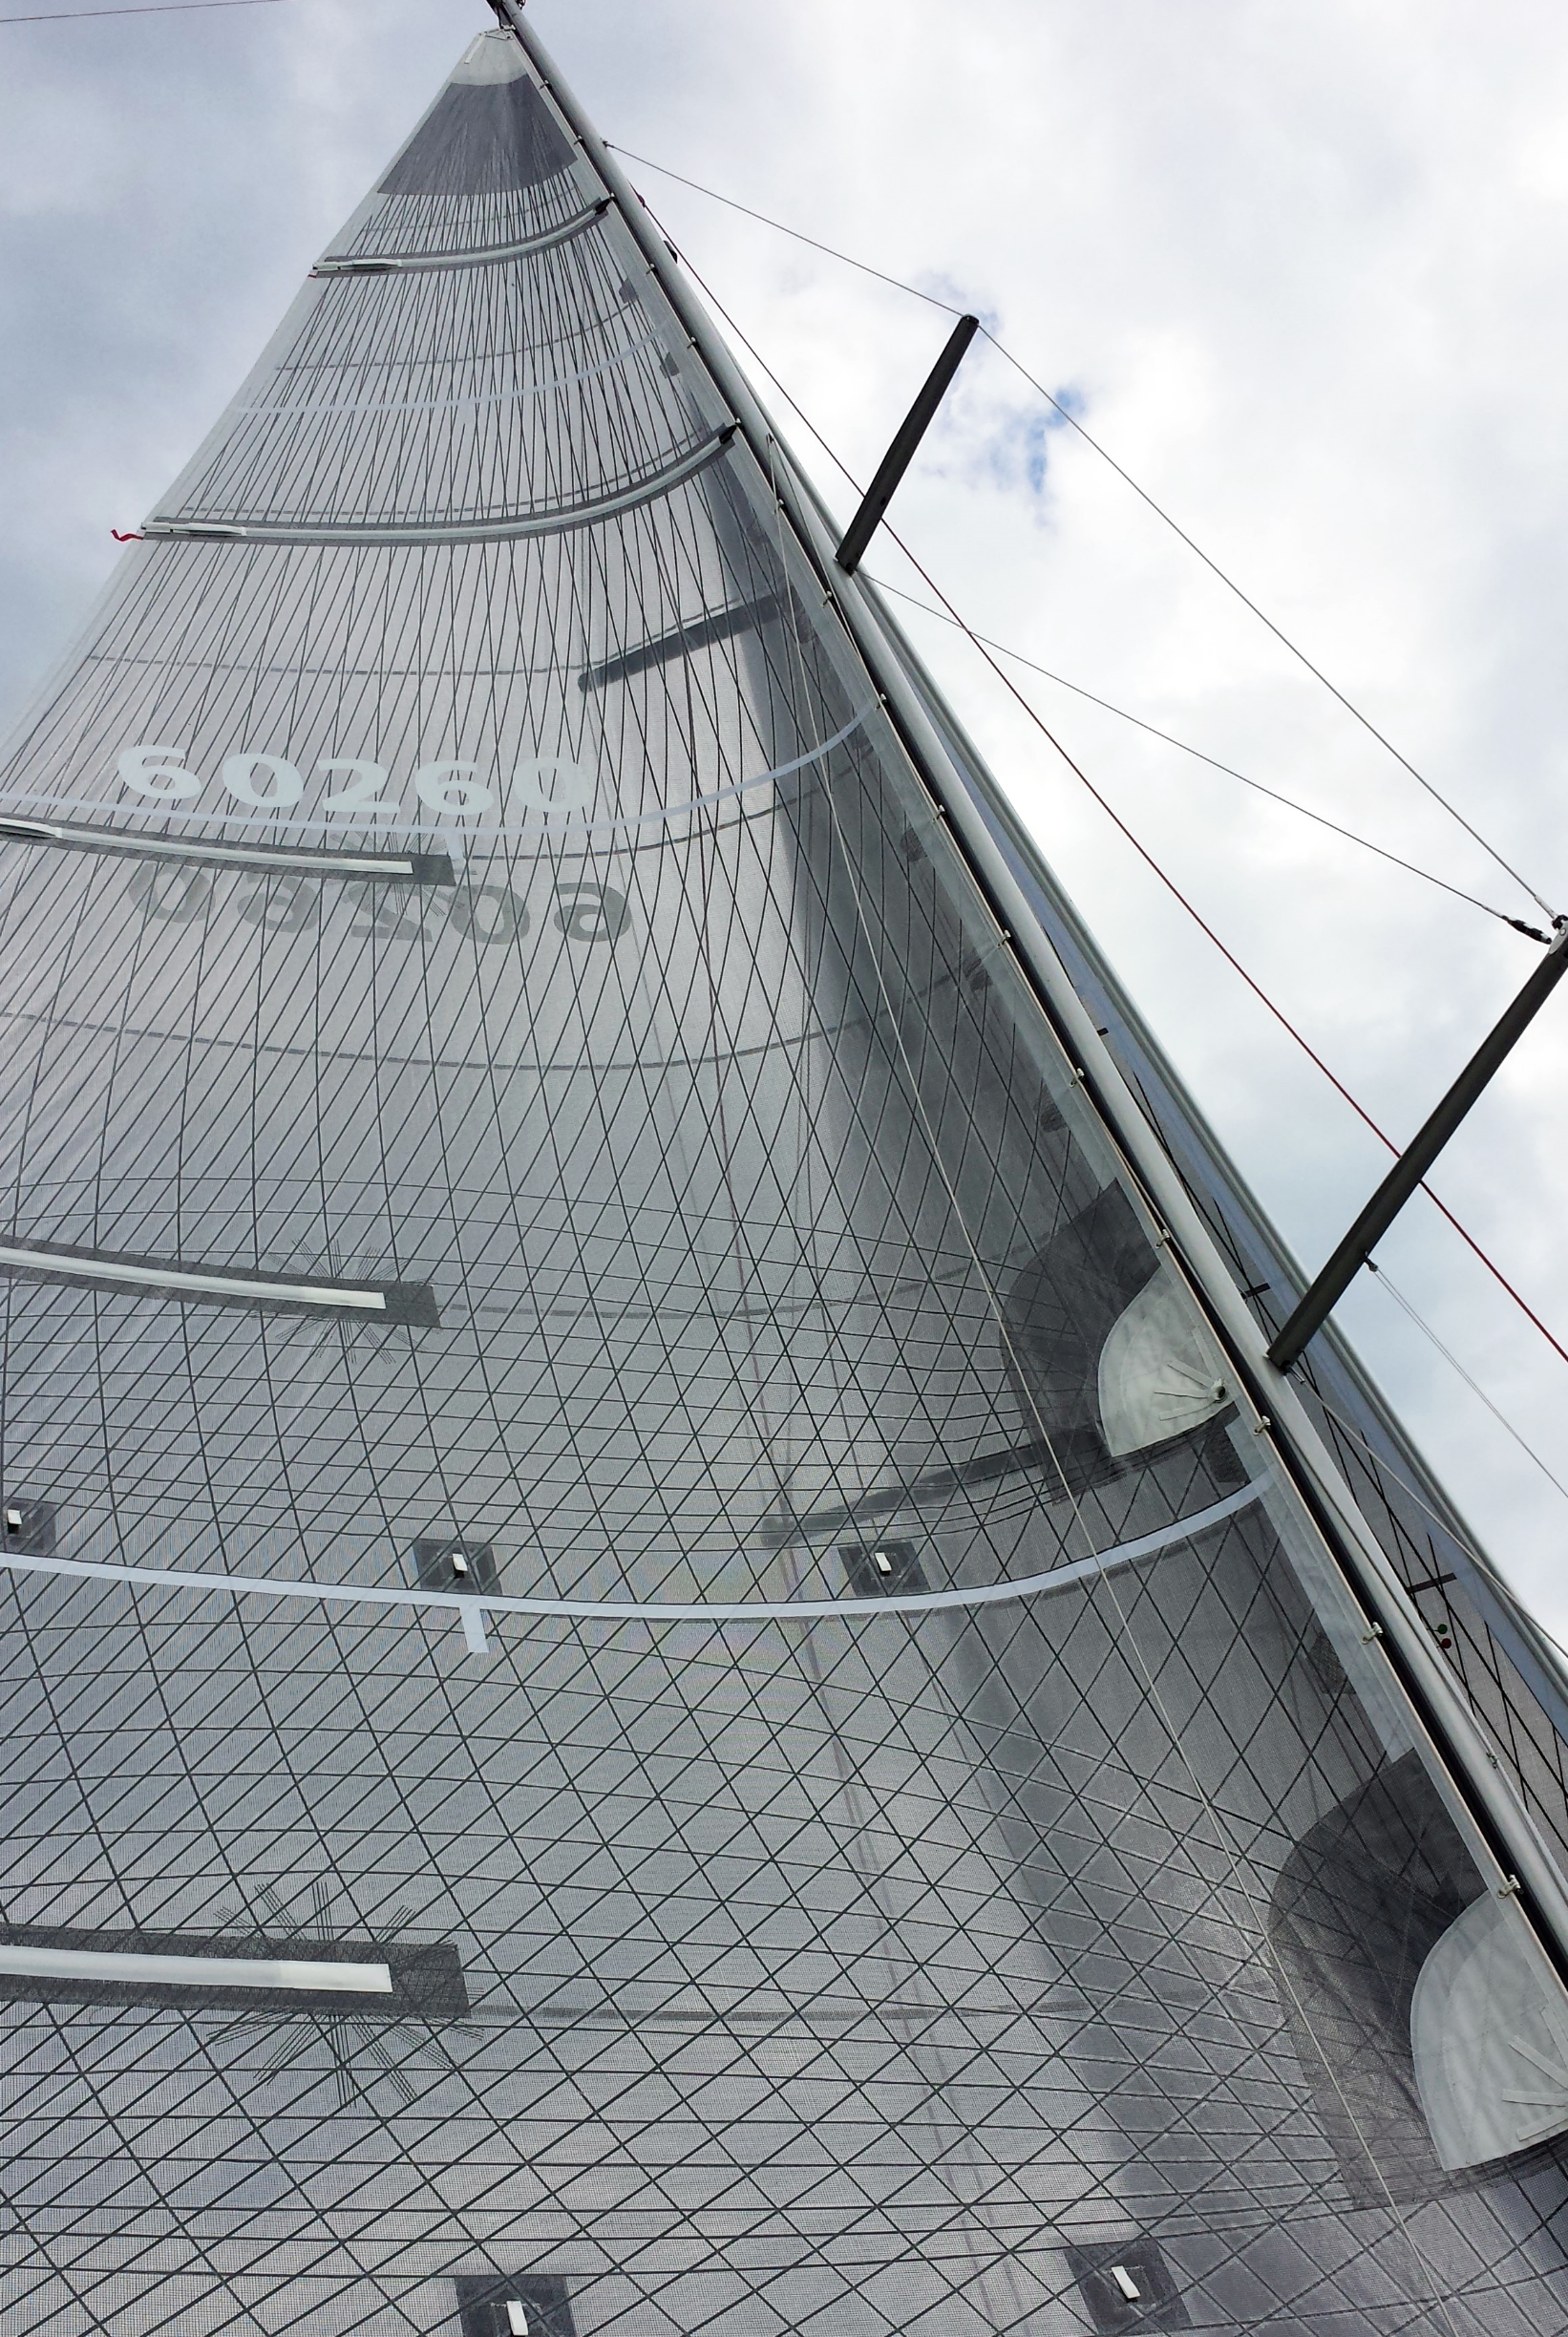 For sails with extra roach up high or lower aspect mainsails, UK Sailmakers offers the Powerhead with the two full-length battens. Shown above is a Tape-Drive Carbon Technora main with the top two battens being full length.